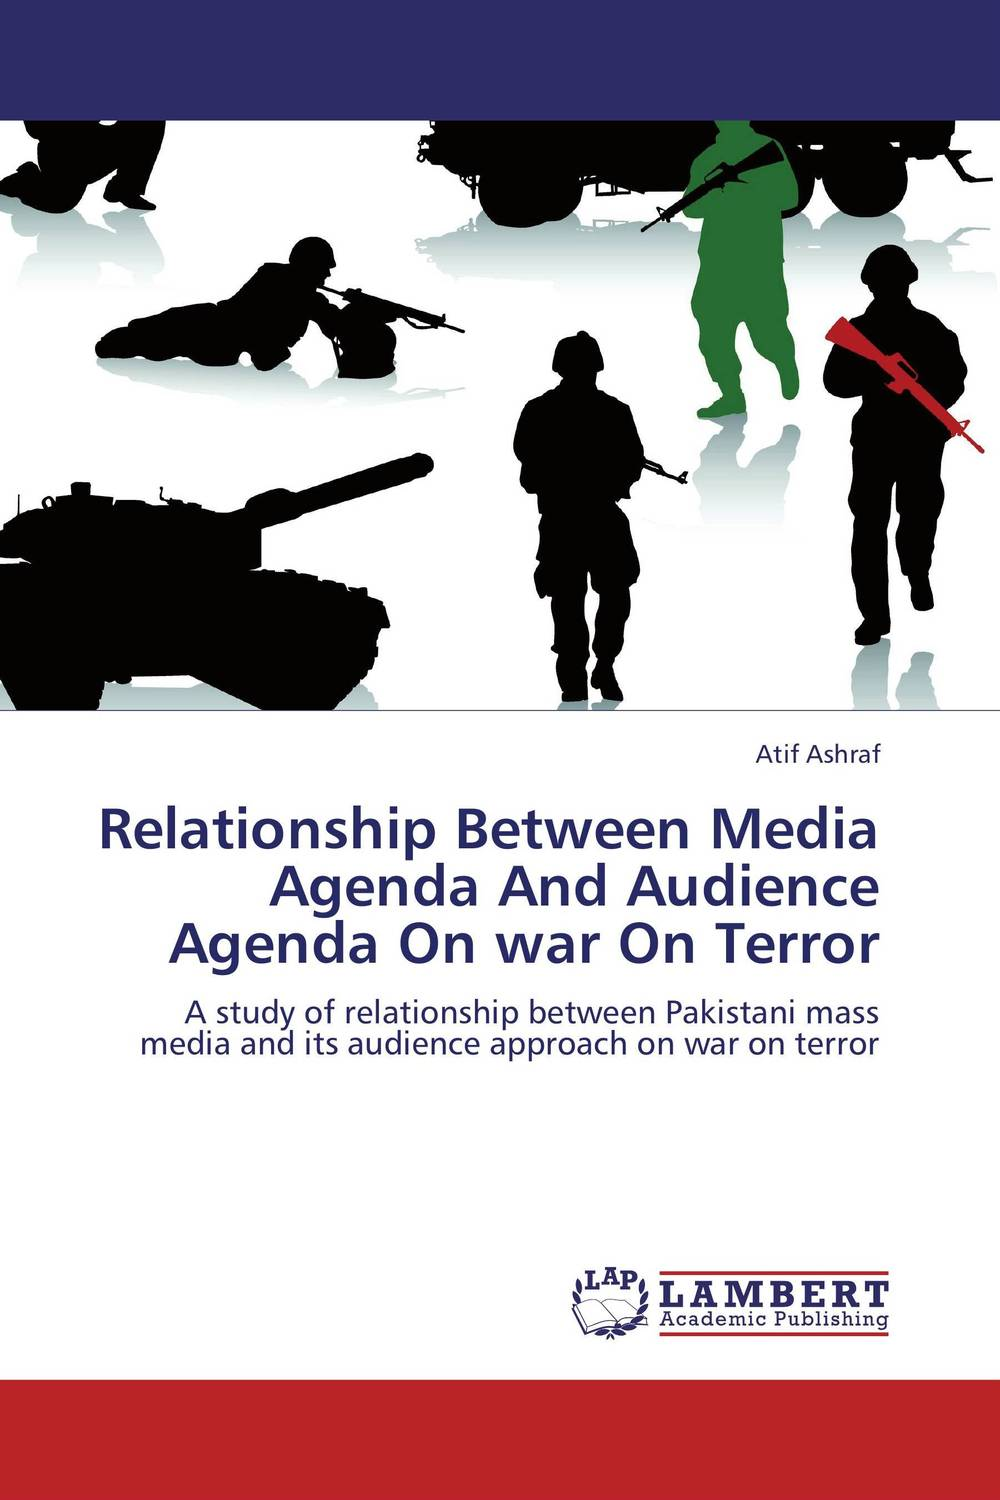 Relationship Between Media Agenda And Audience Agenda On war On Terror pakistan on the brink the future of pakistan afghanistan and the west